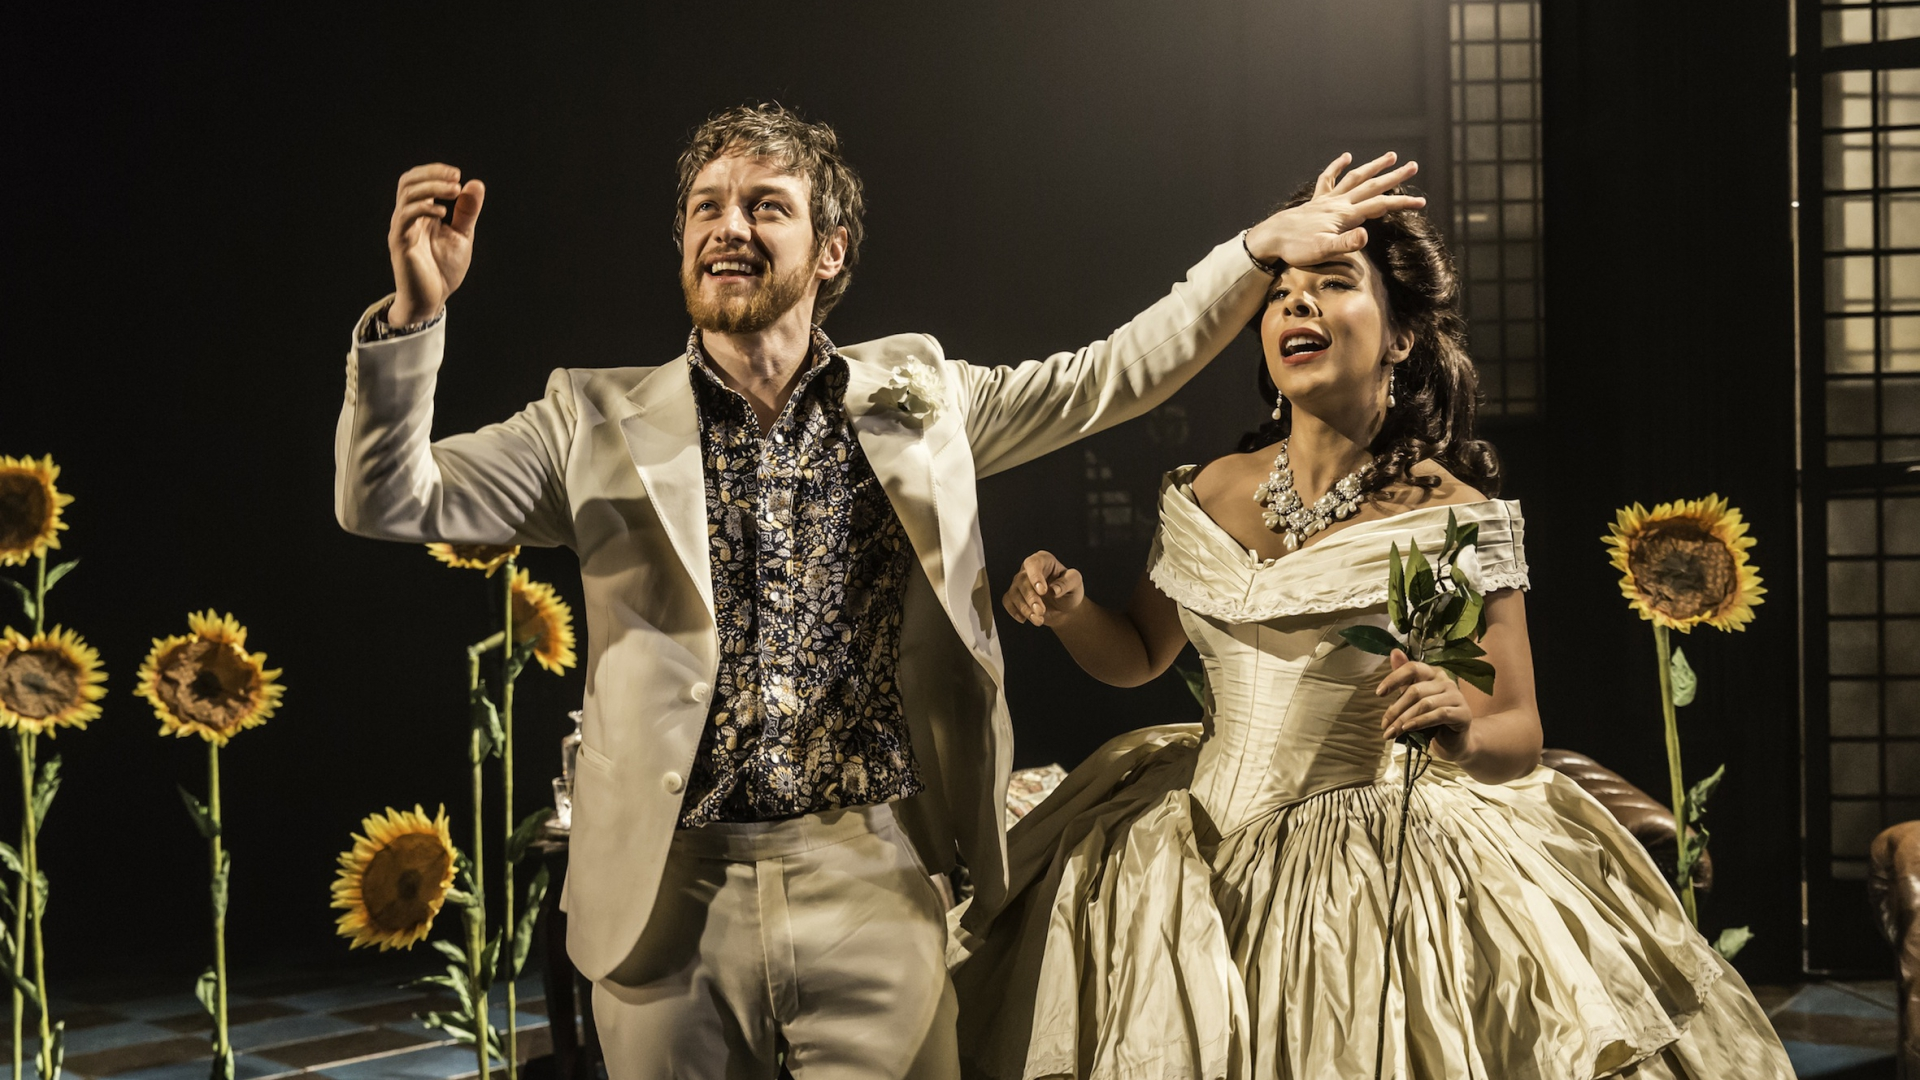 ruling-class-review-james-mcavoy